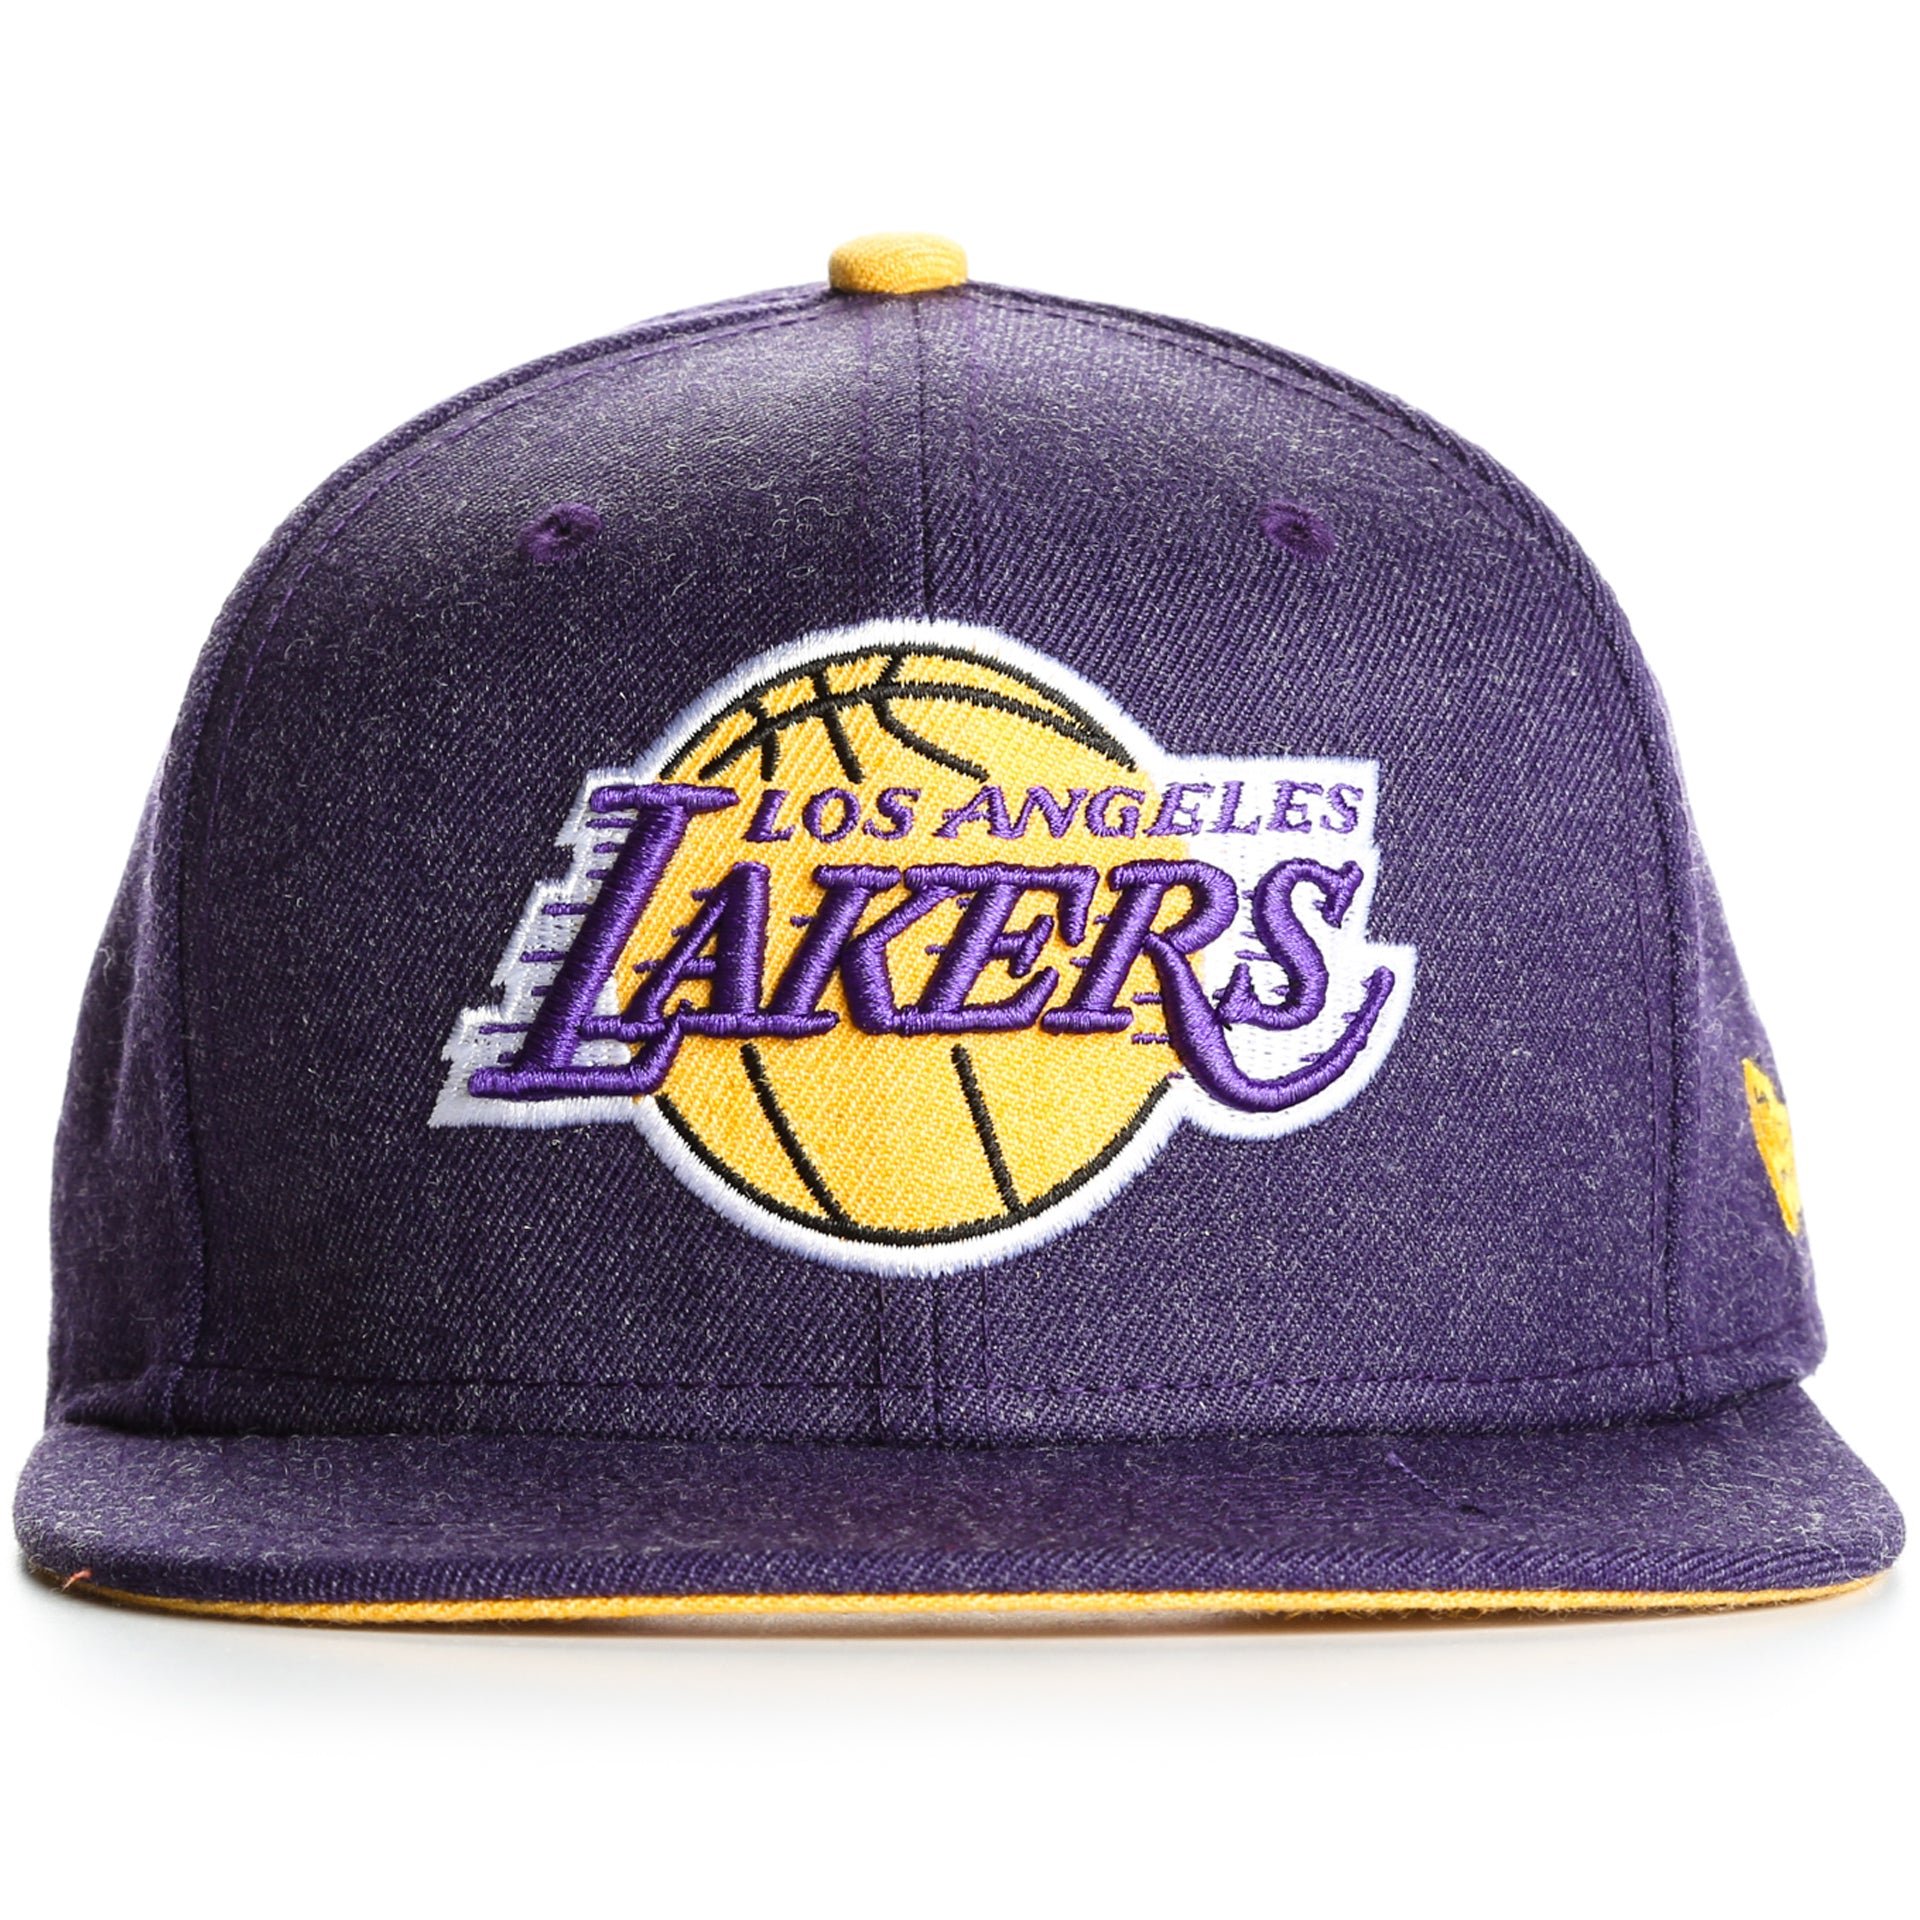 best cheap d9a84 80a10 New Era 9Fifty Los Angeles Lakers Heather Hype Snapback - Purple Heather